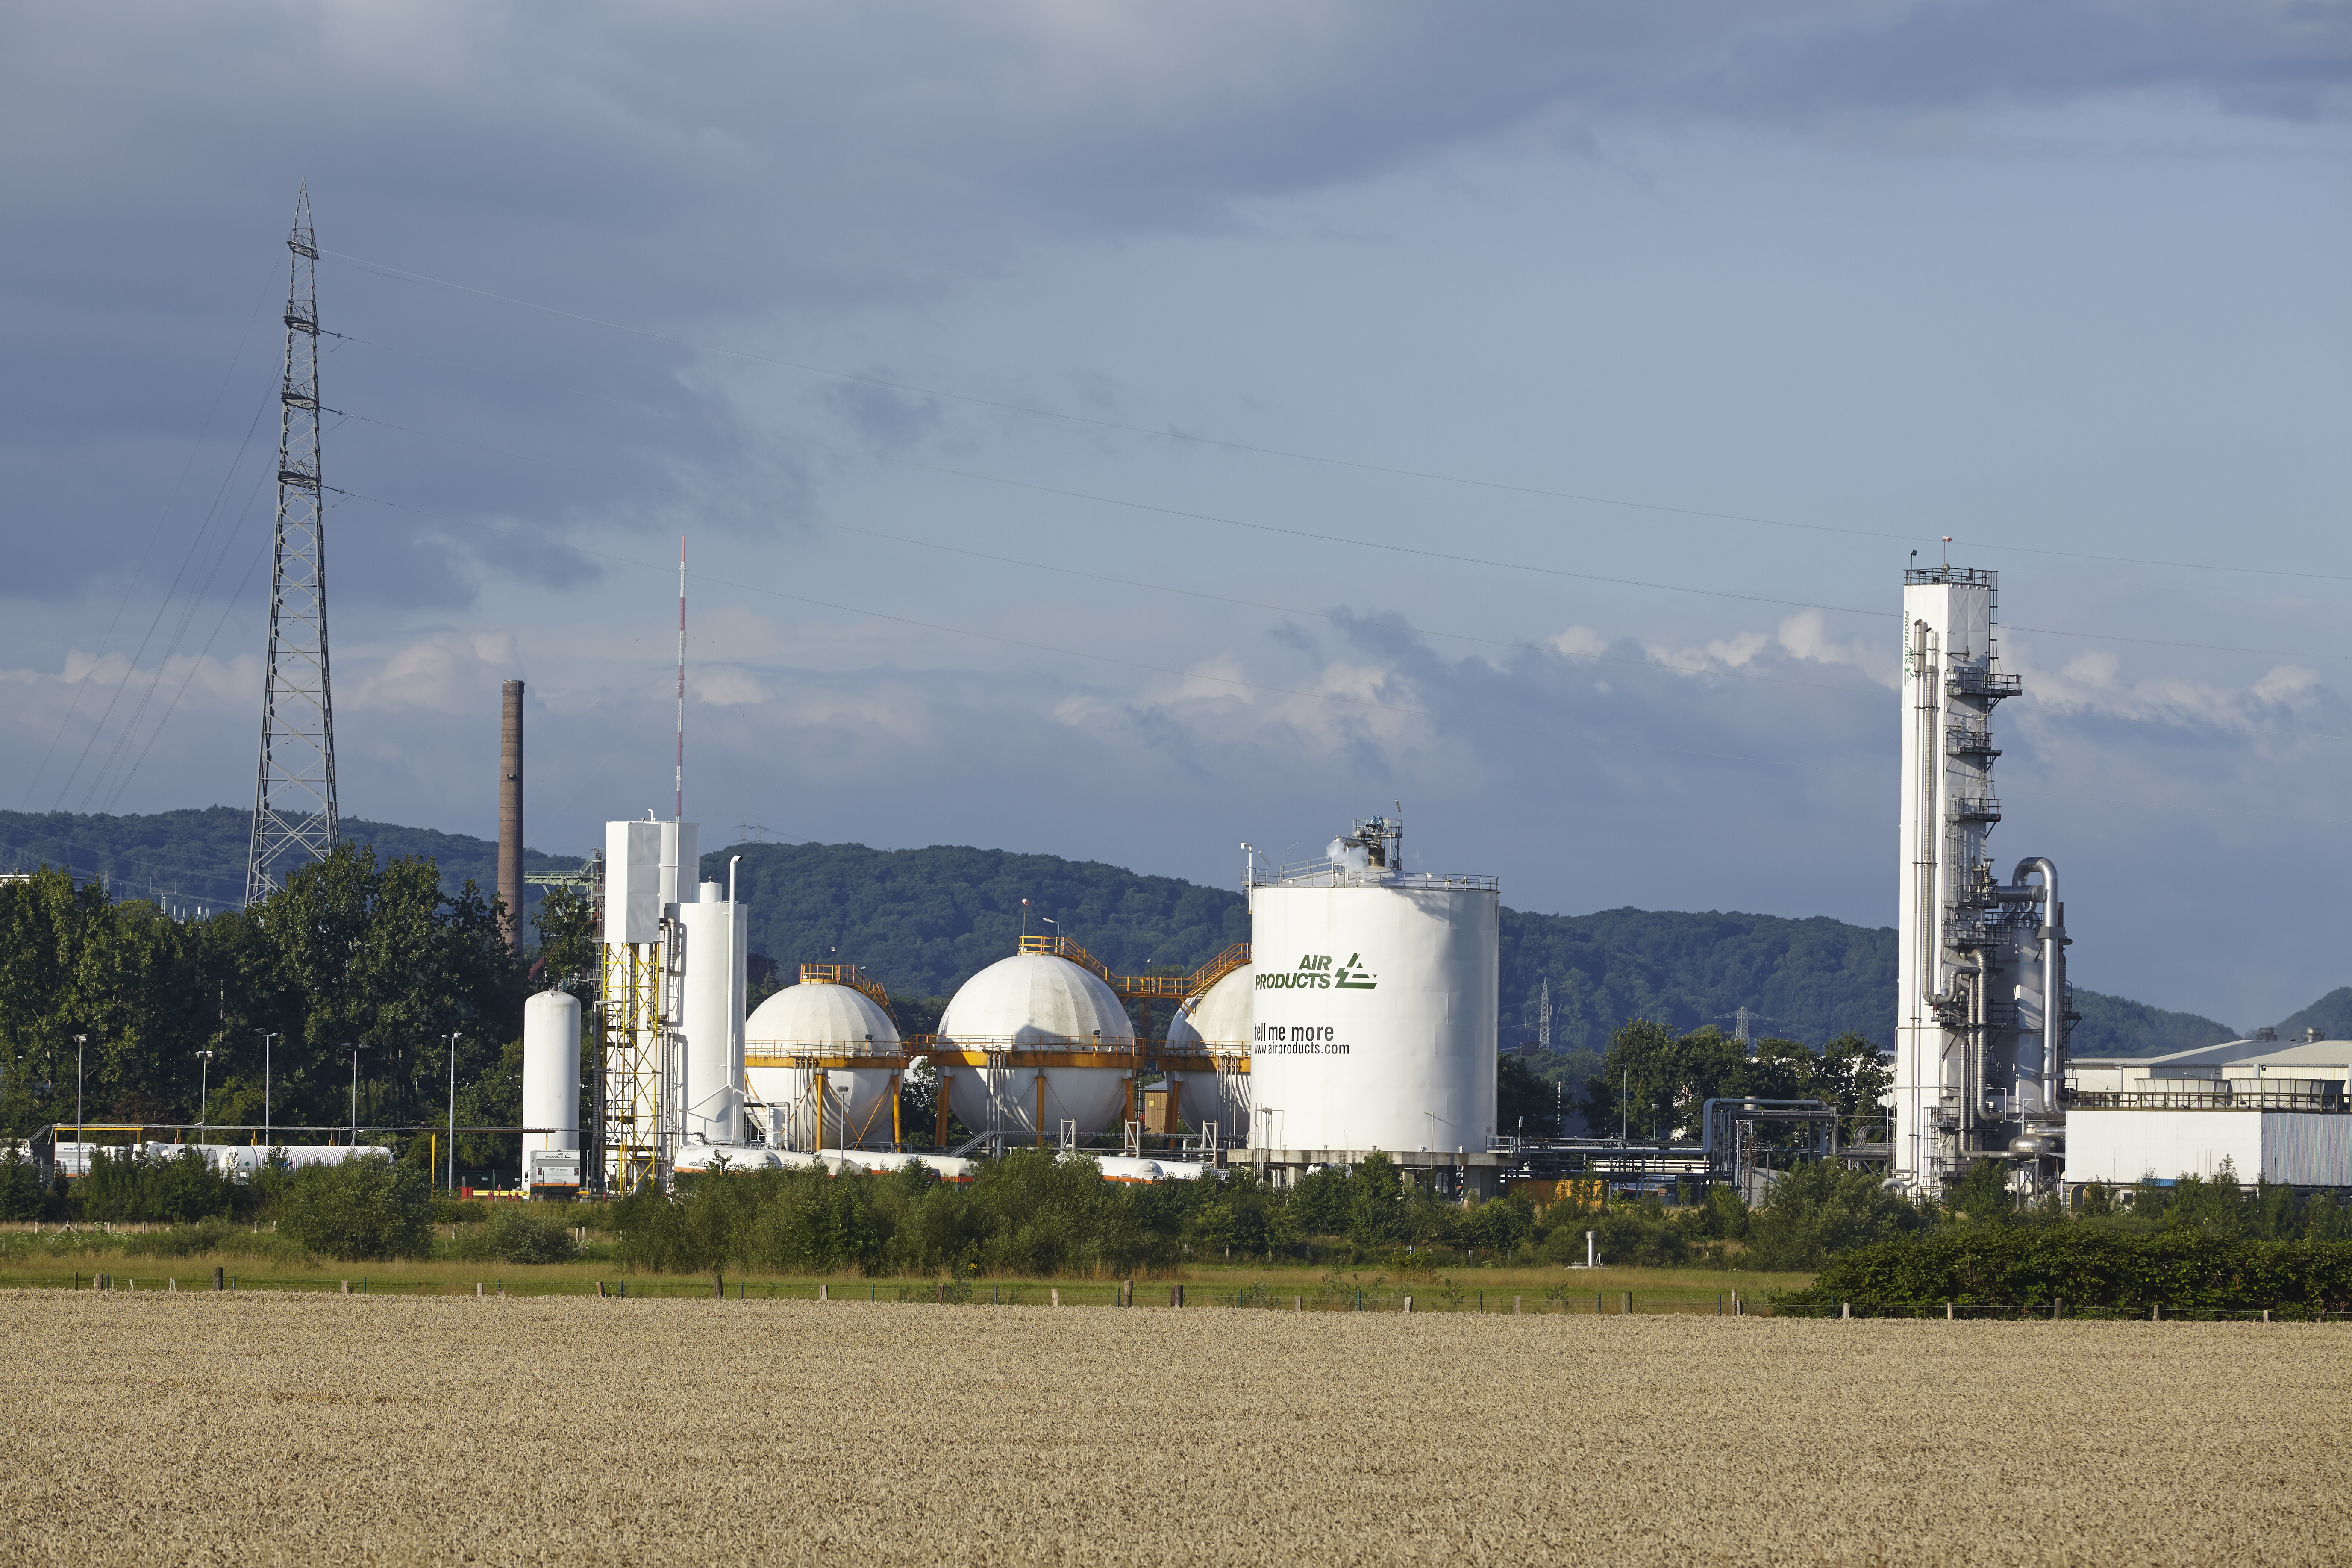 Hattingen, Germany - July 25, 2015: The German branch of Air Products produces gases by liquidation of air near the river Ruhr on July 25, 2015.